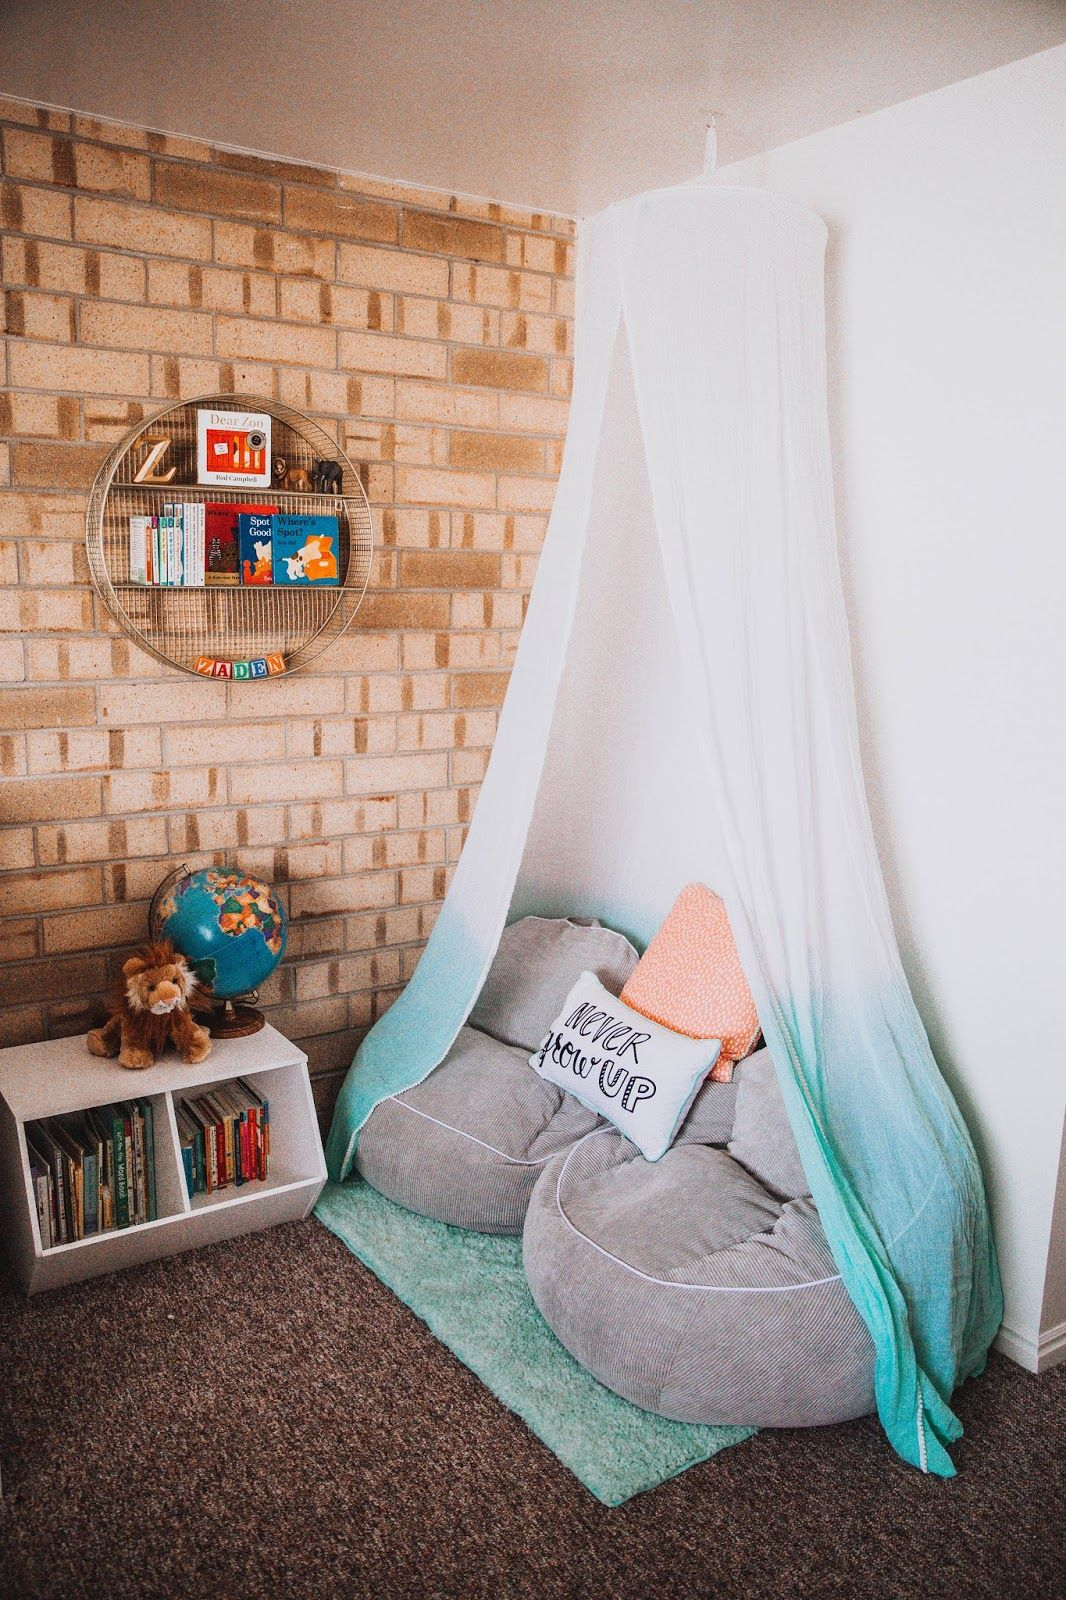 30 Cool Ideas On How To Set Up The Reading Corner In The Nursery - 25 relaxing and cozy reading corners best kid reading nooks reading nooks and book shelves ideas